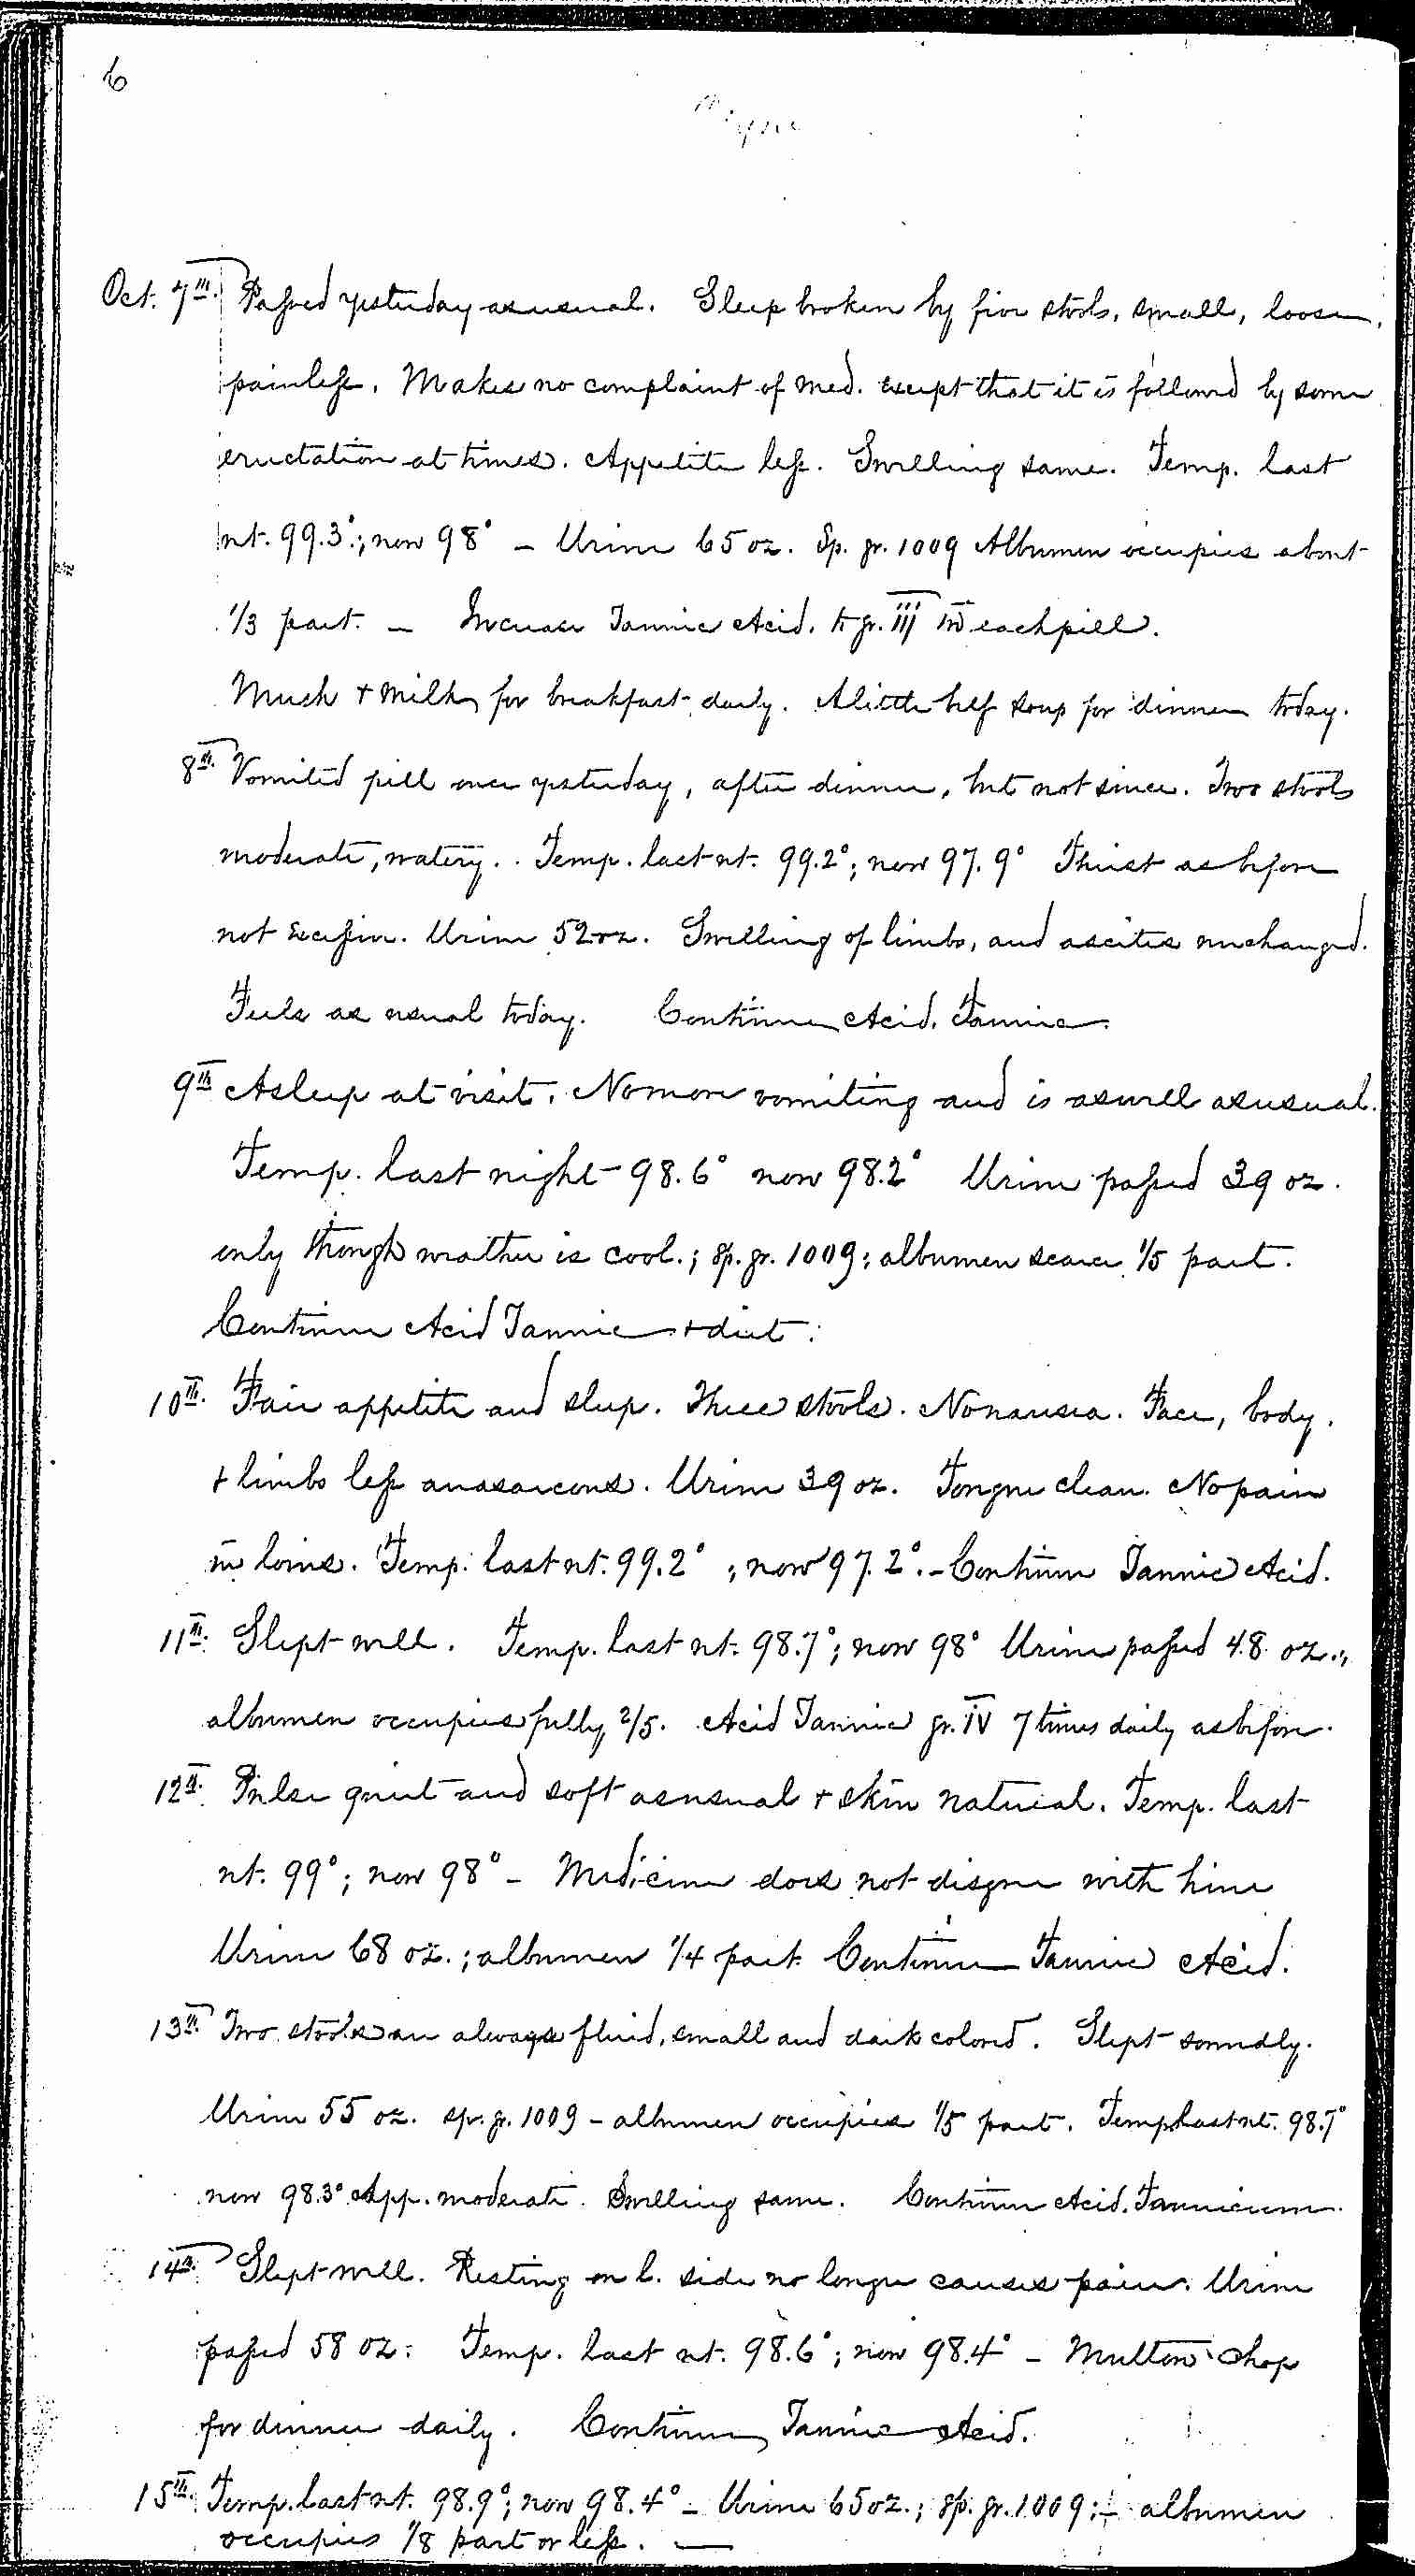 Entry for Bernard Coyne (page 6 of 13) in the log Hospital Tickets and Case Papers - Naval Hospital - Washington, D.C. - 1868-69